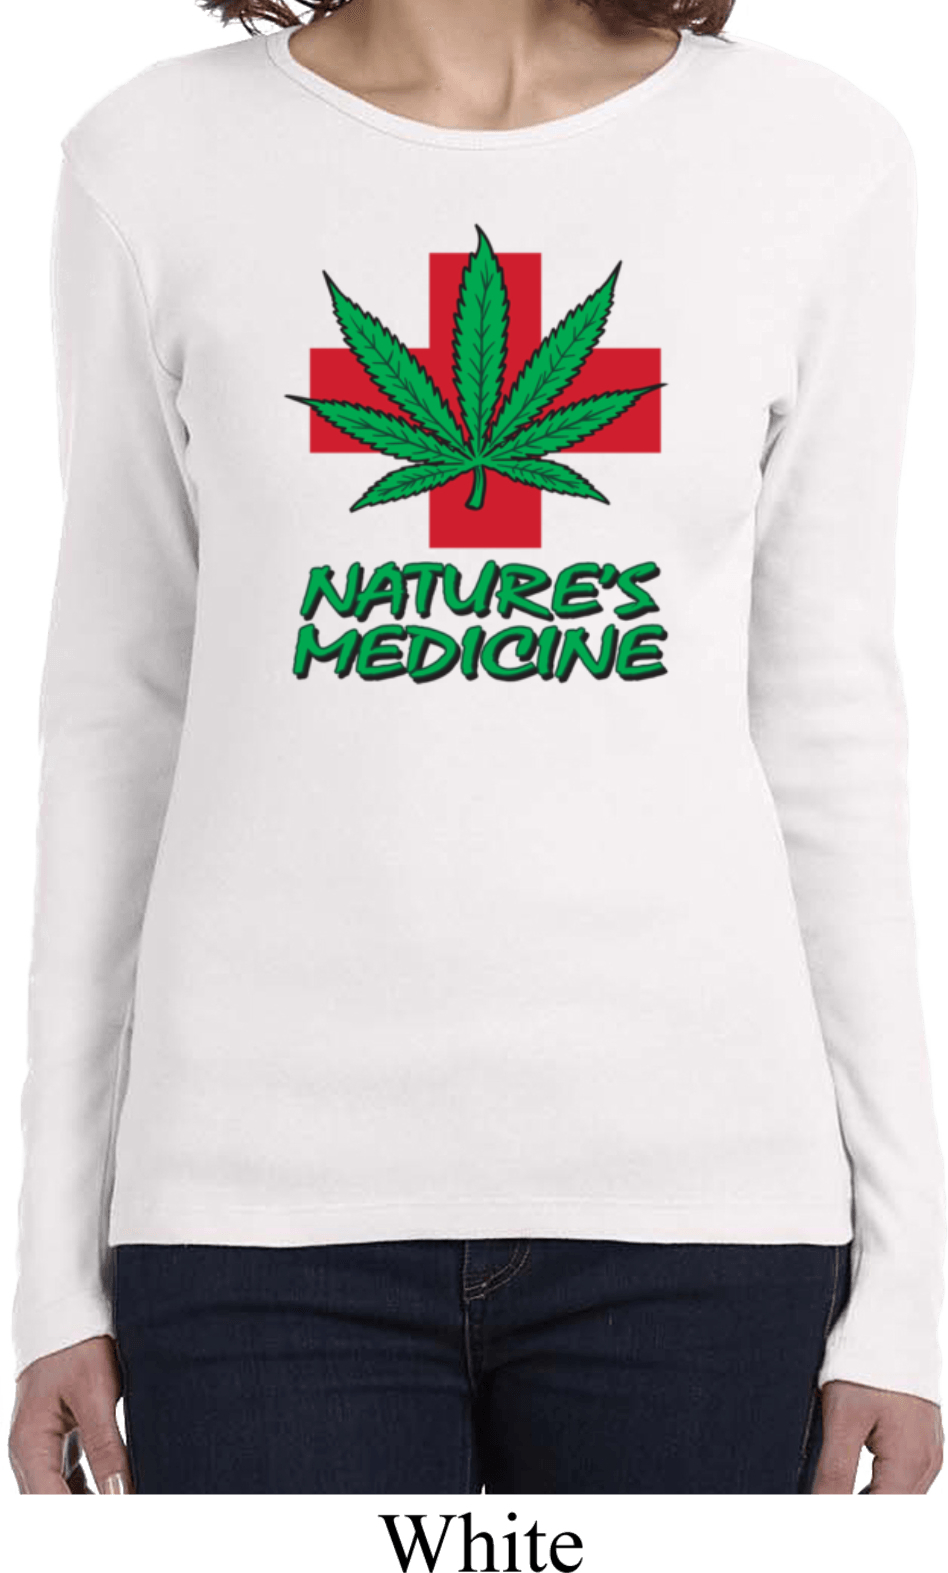 Ladies funny shirt natures medicine long sleeve tee t for Misses long sleeve tee shirts